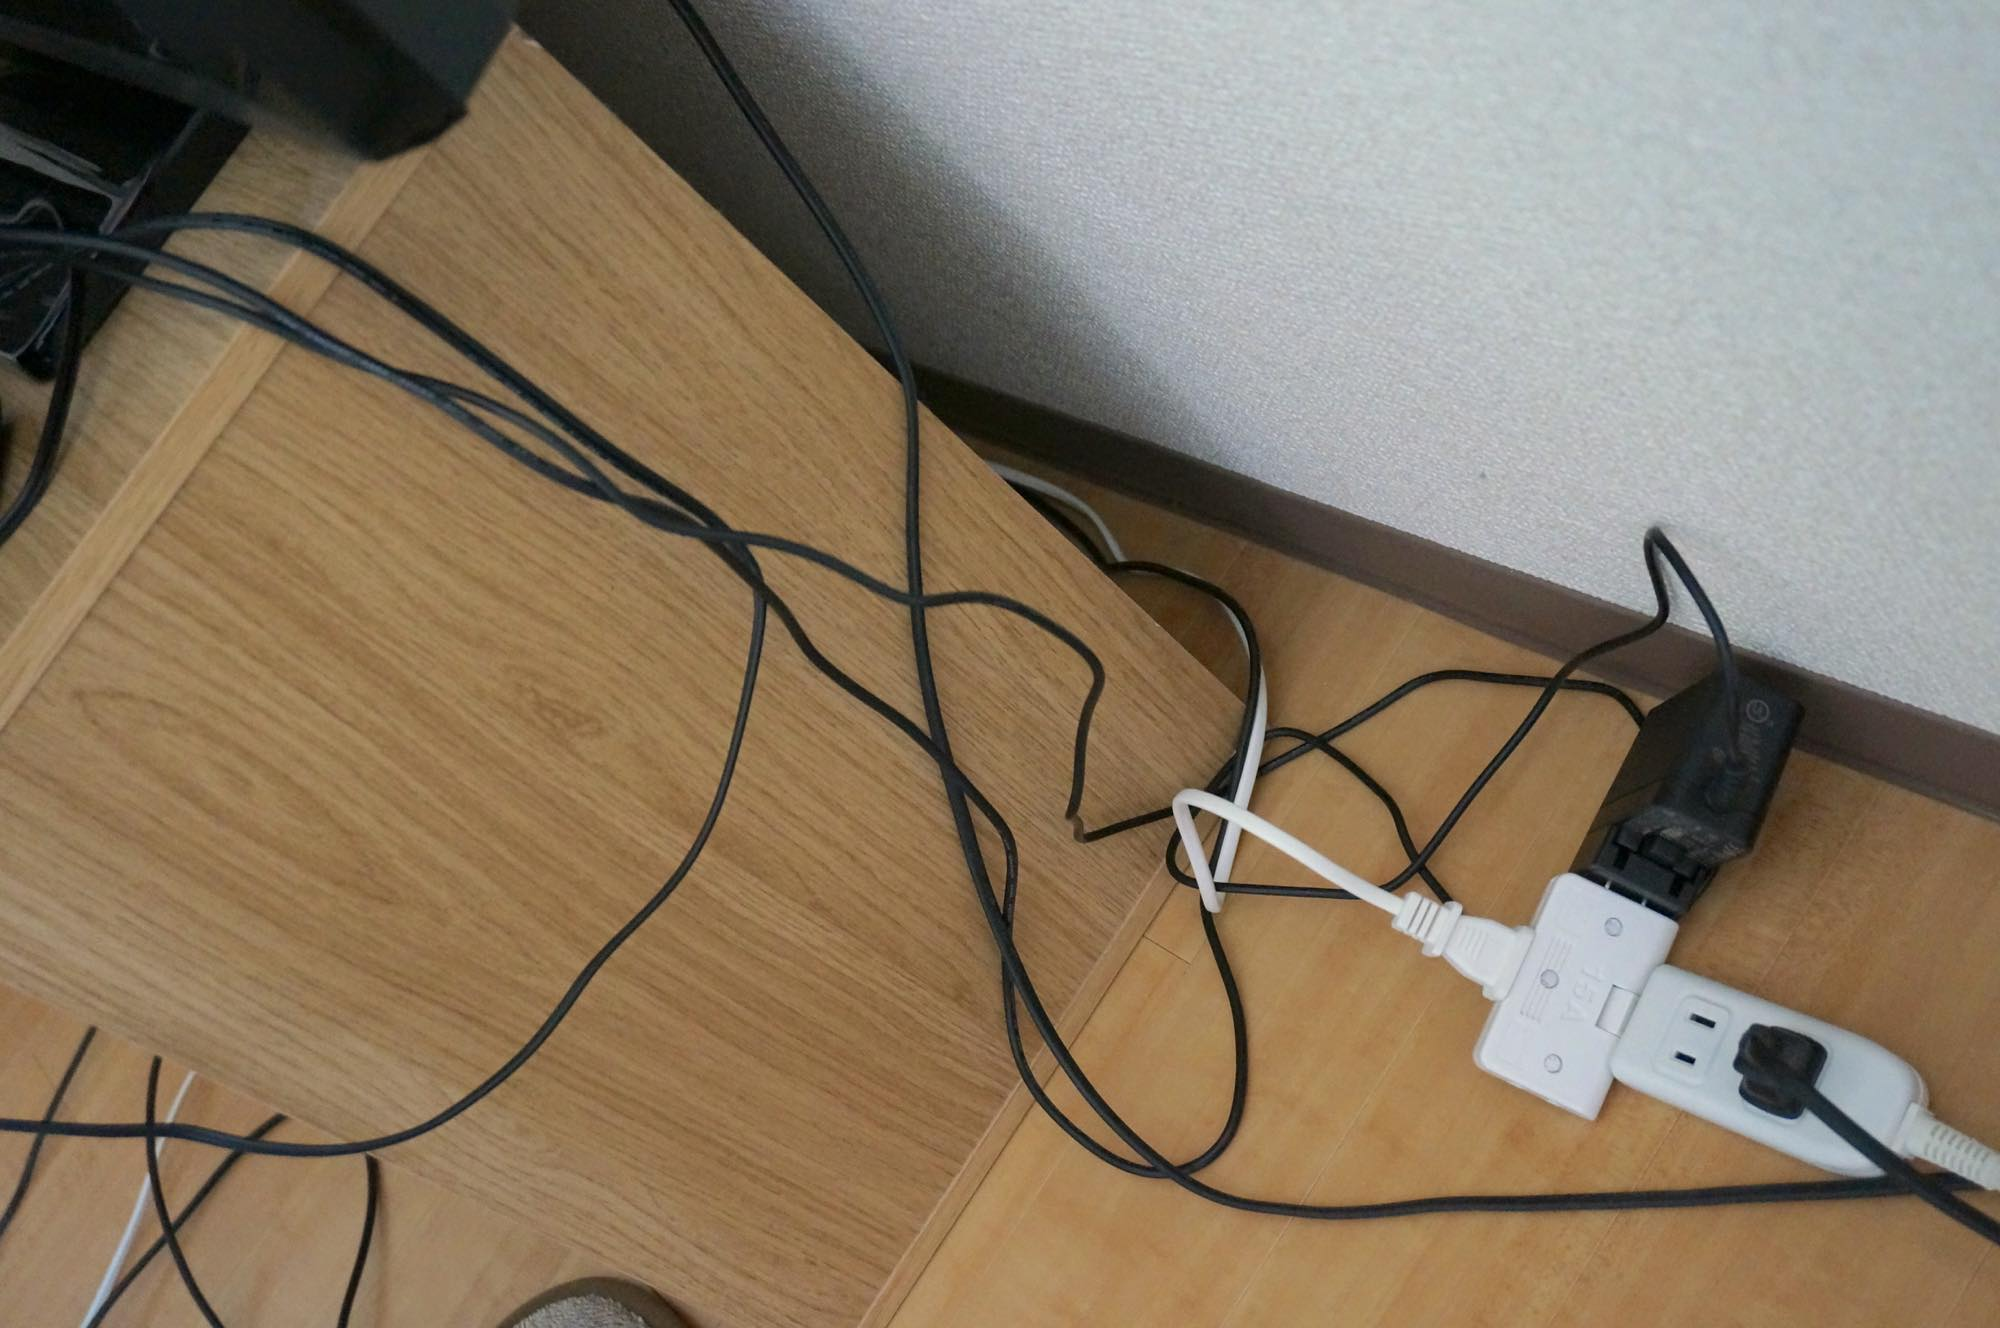 tv-cables1